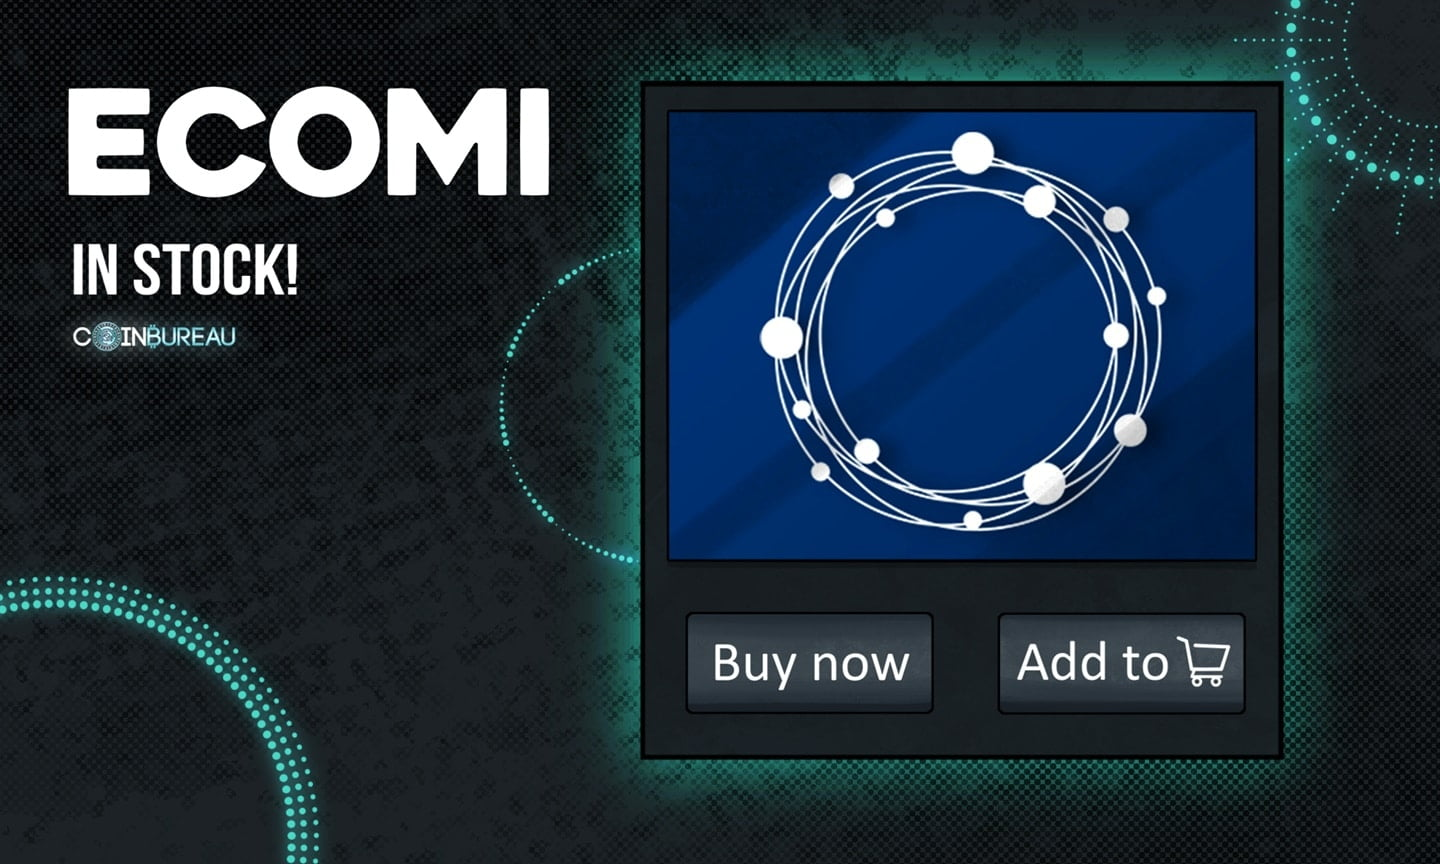 Will OMI PUMP? Where to BUY OMI!